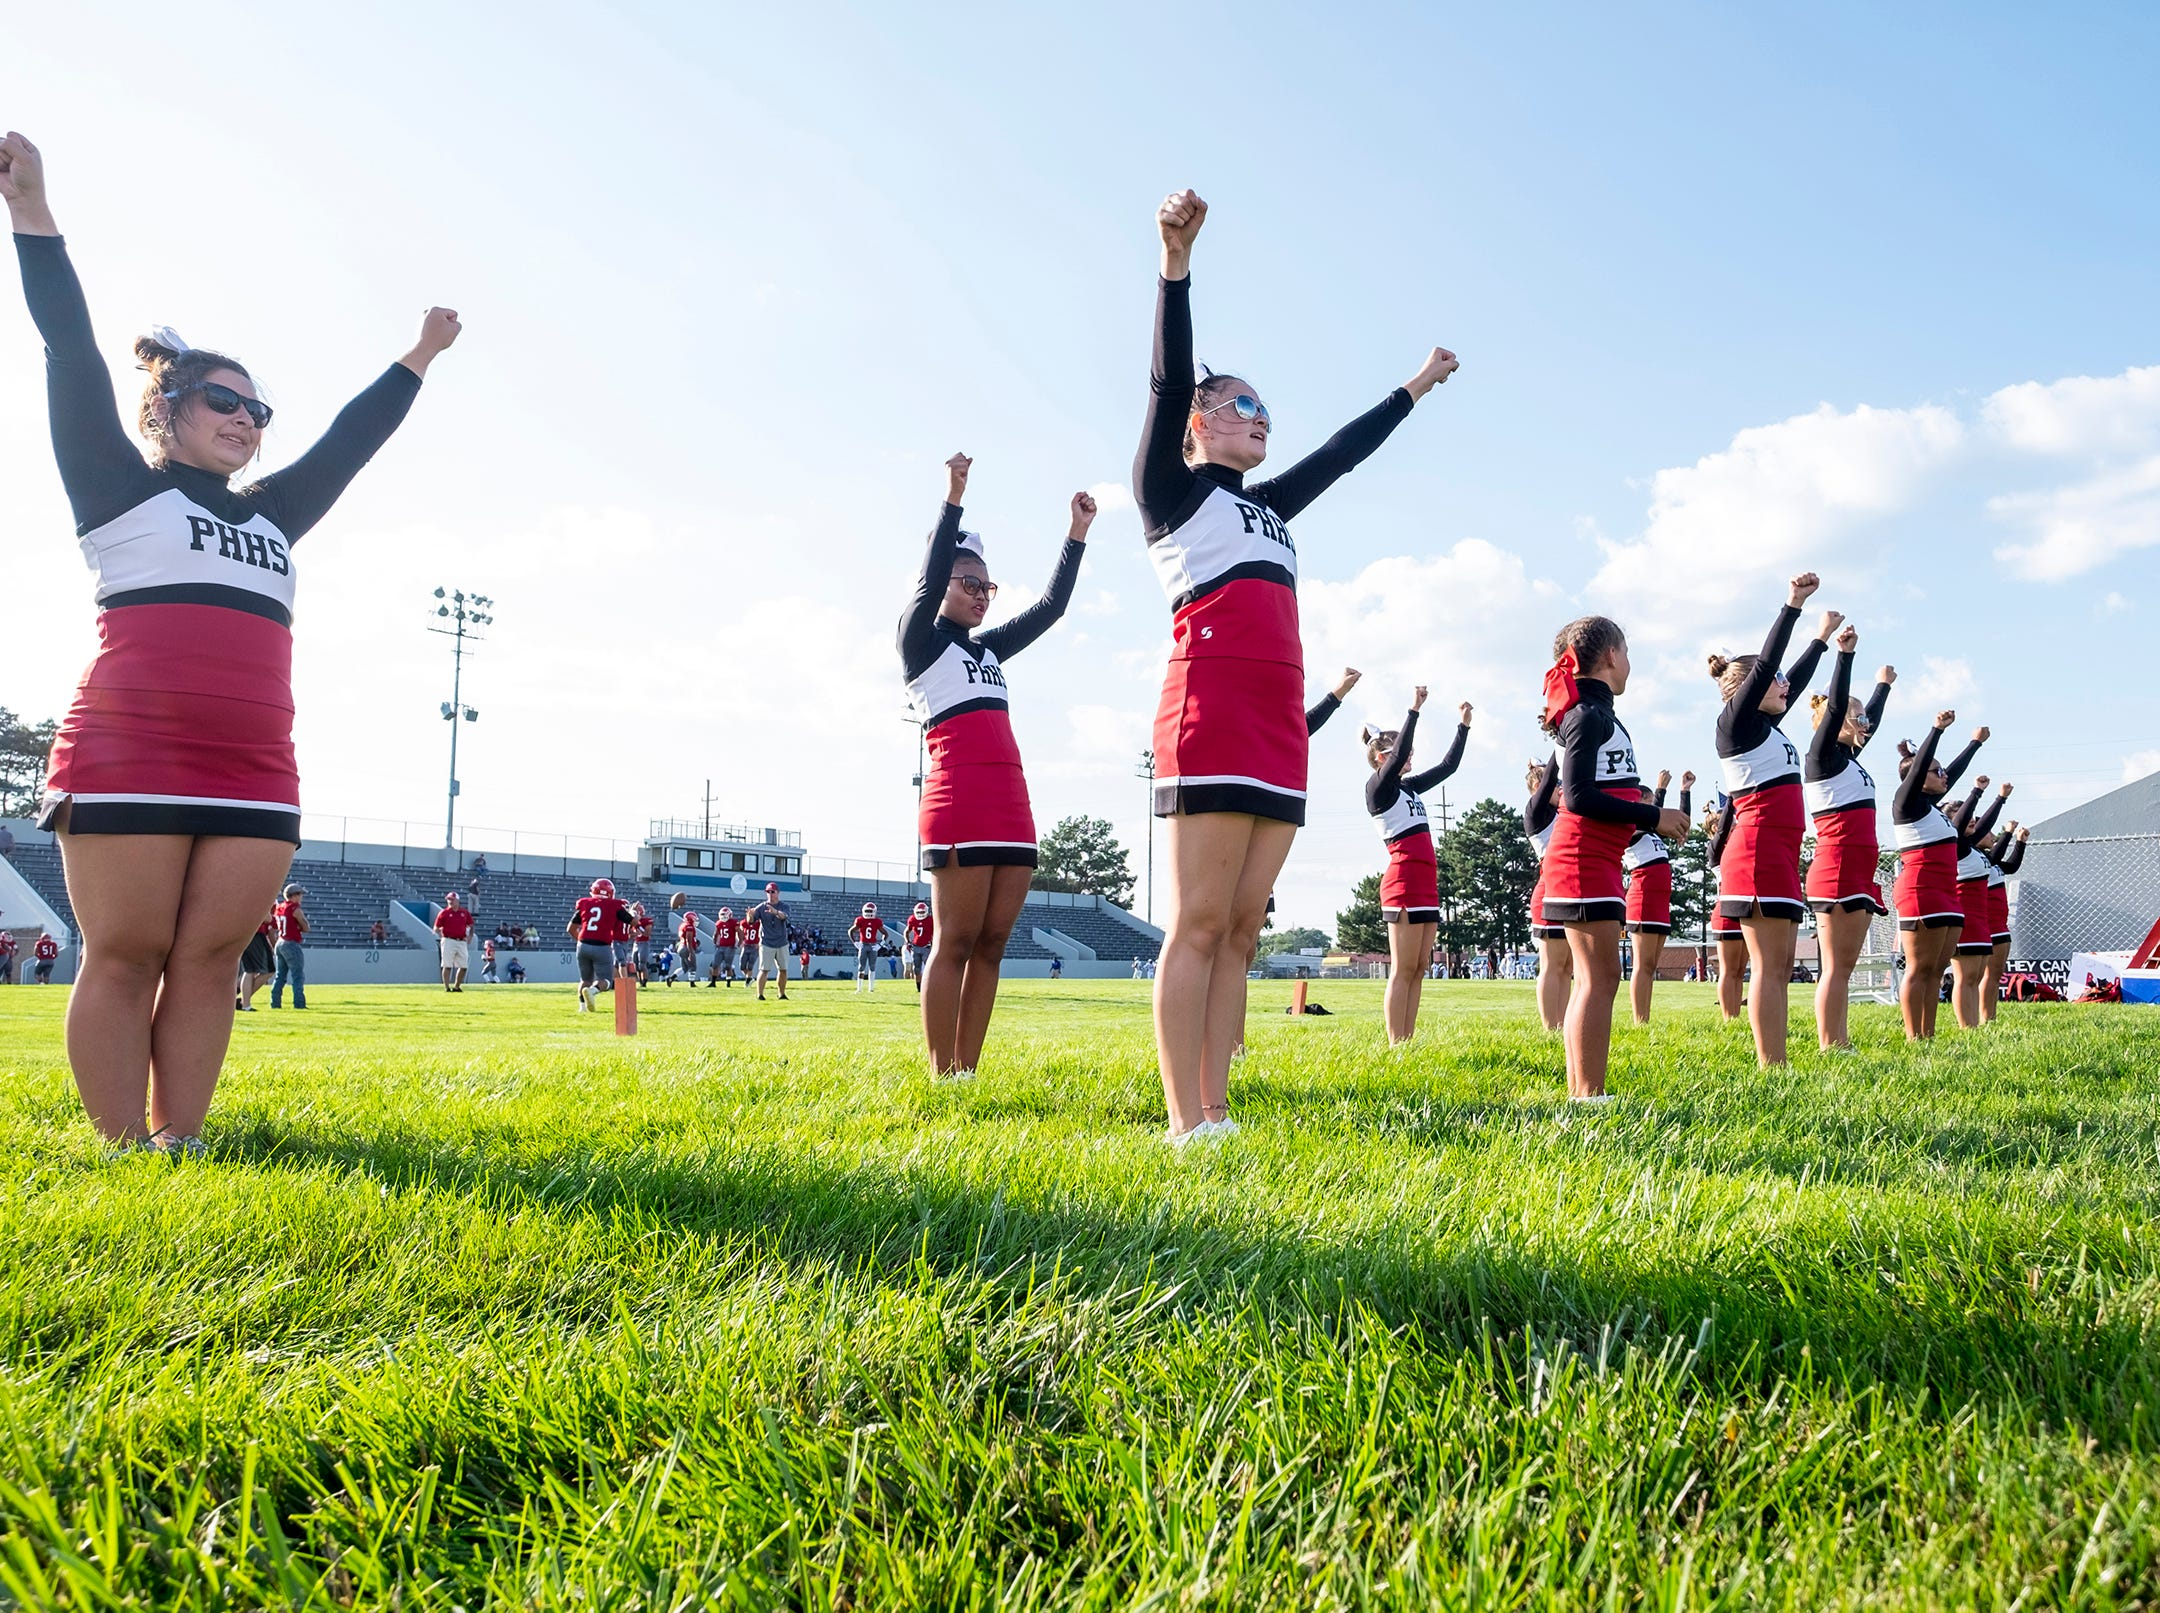 The Port Huron High School cheerleaders warm-up Thursday, Aug. 23, 2018, before the Big Reds' week 1 football game against Carman Ainsworth High School at Memorial Stadium.